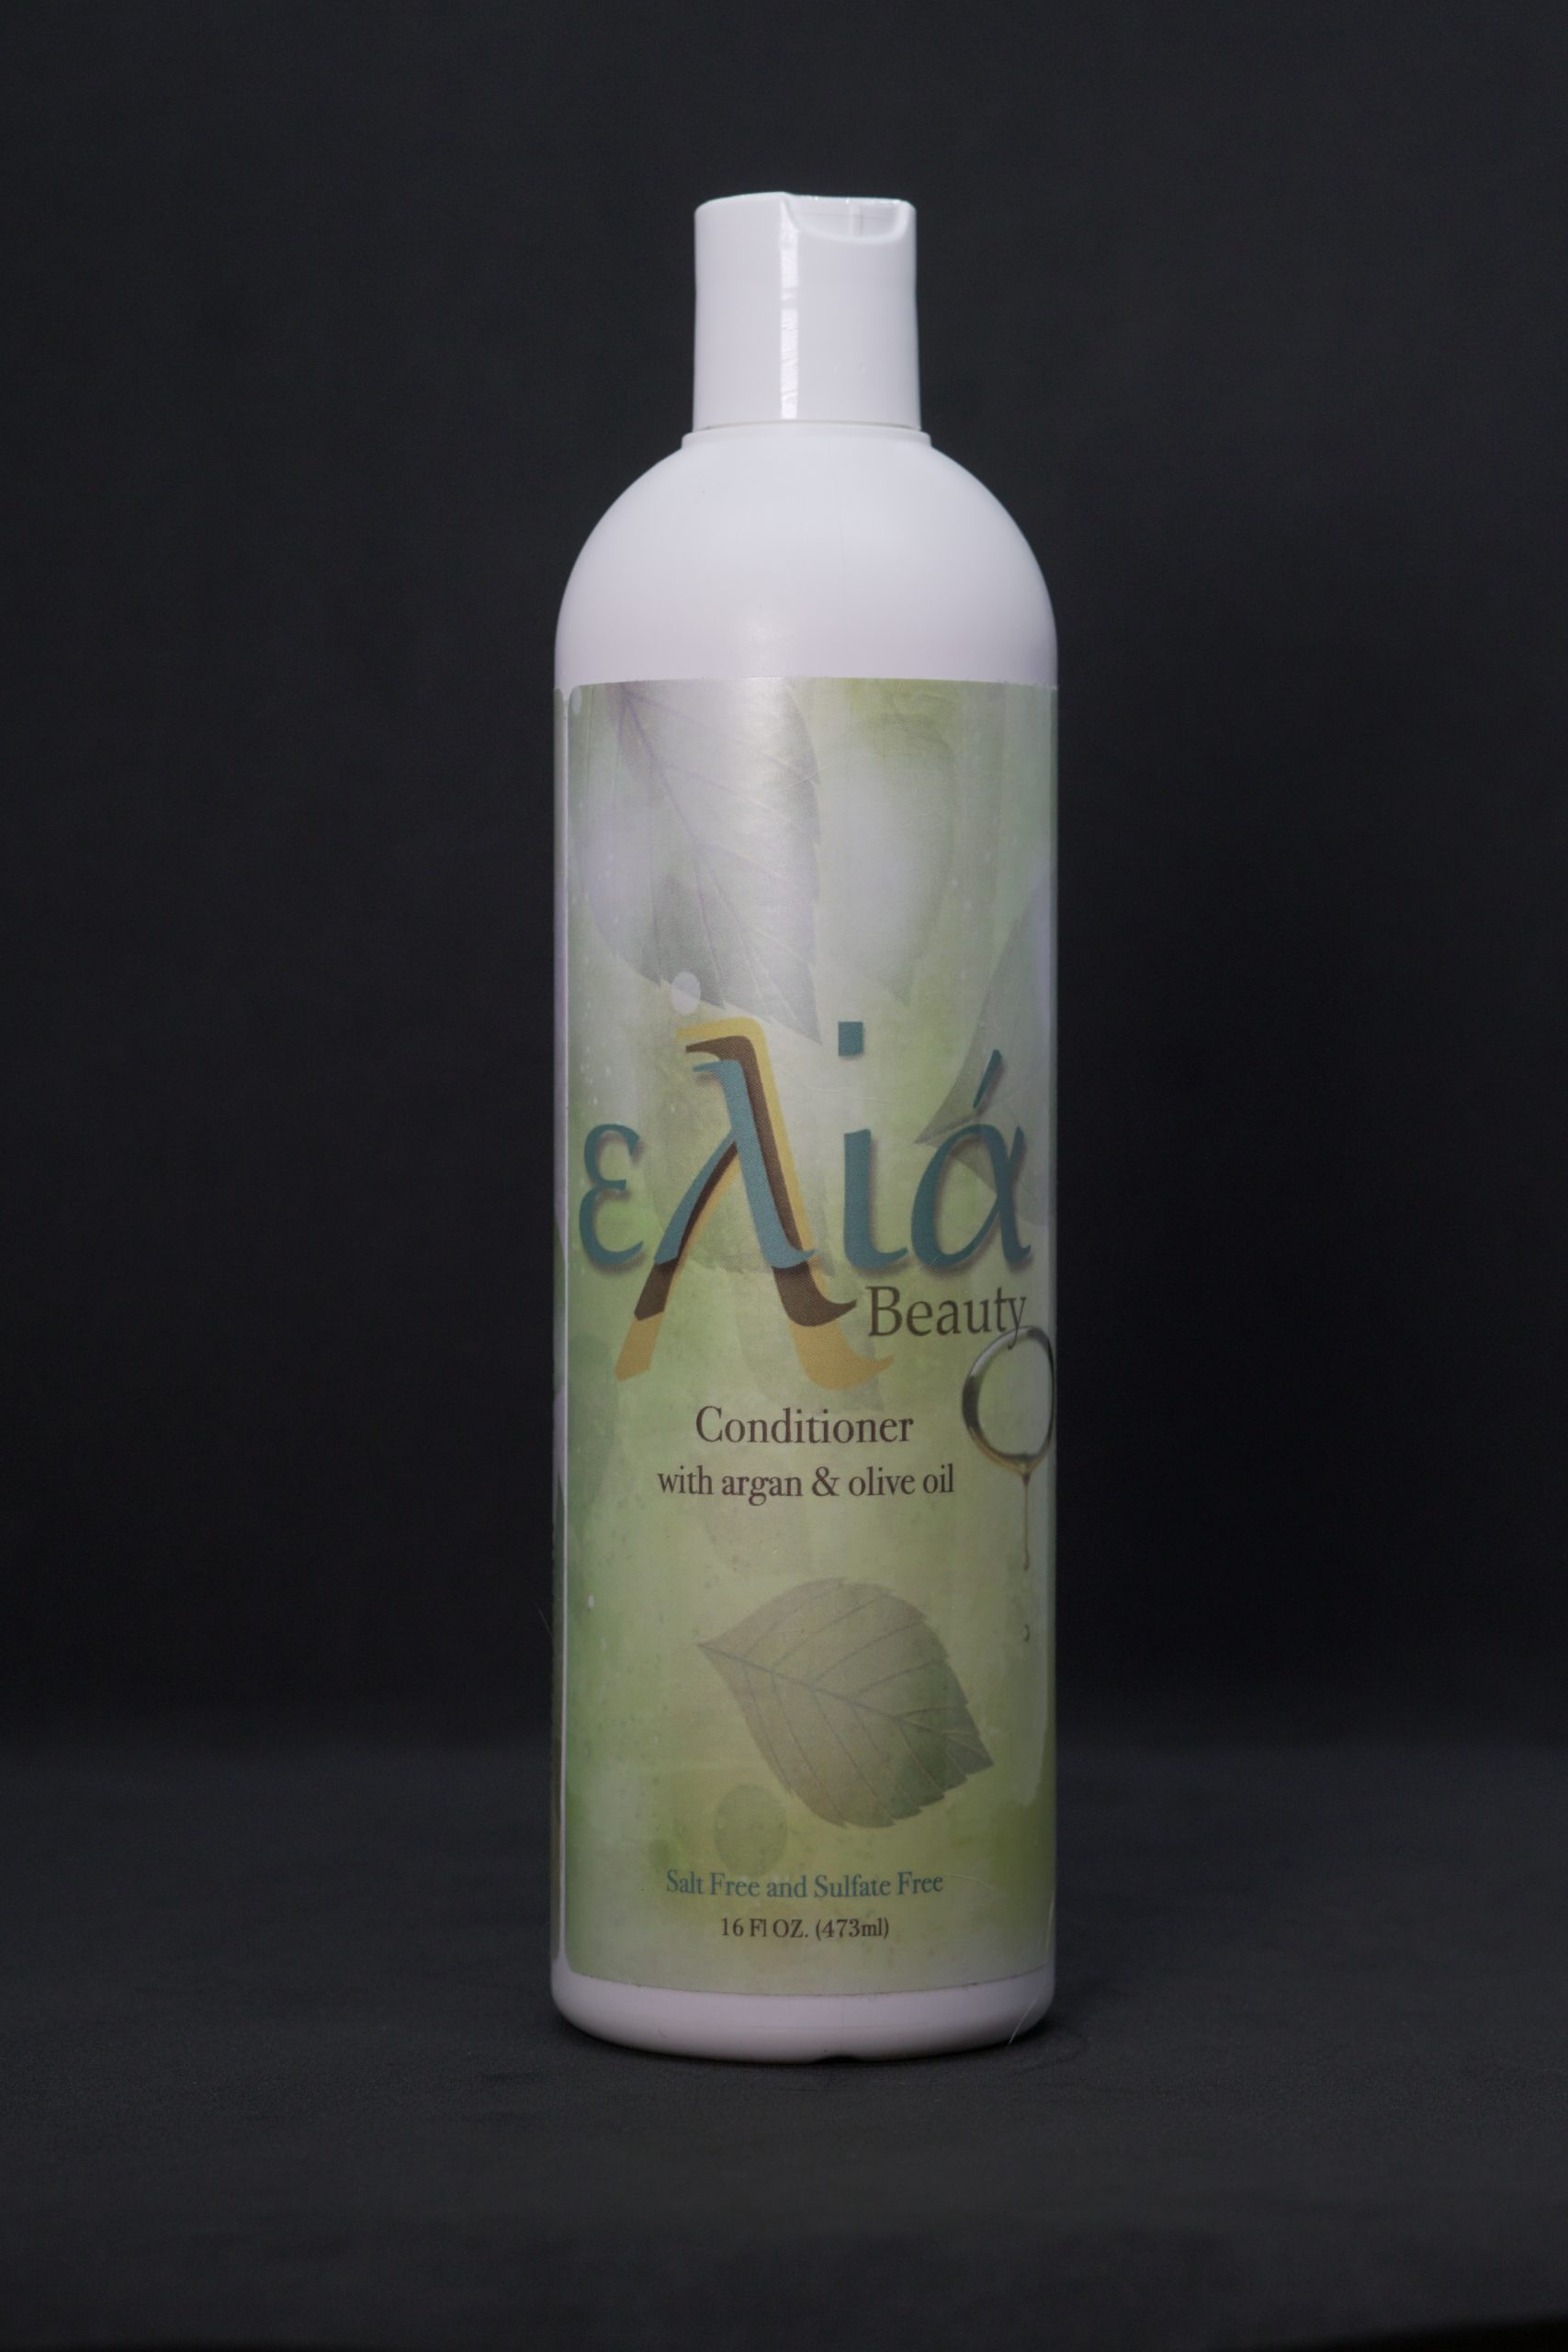 Salt & Sulfate Free Conditioner